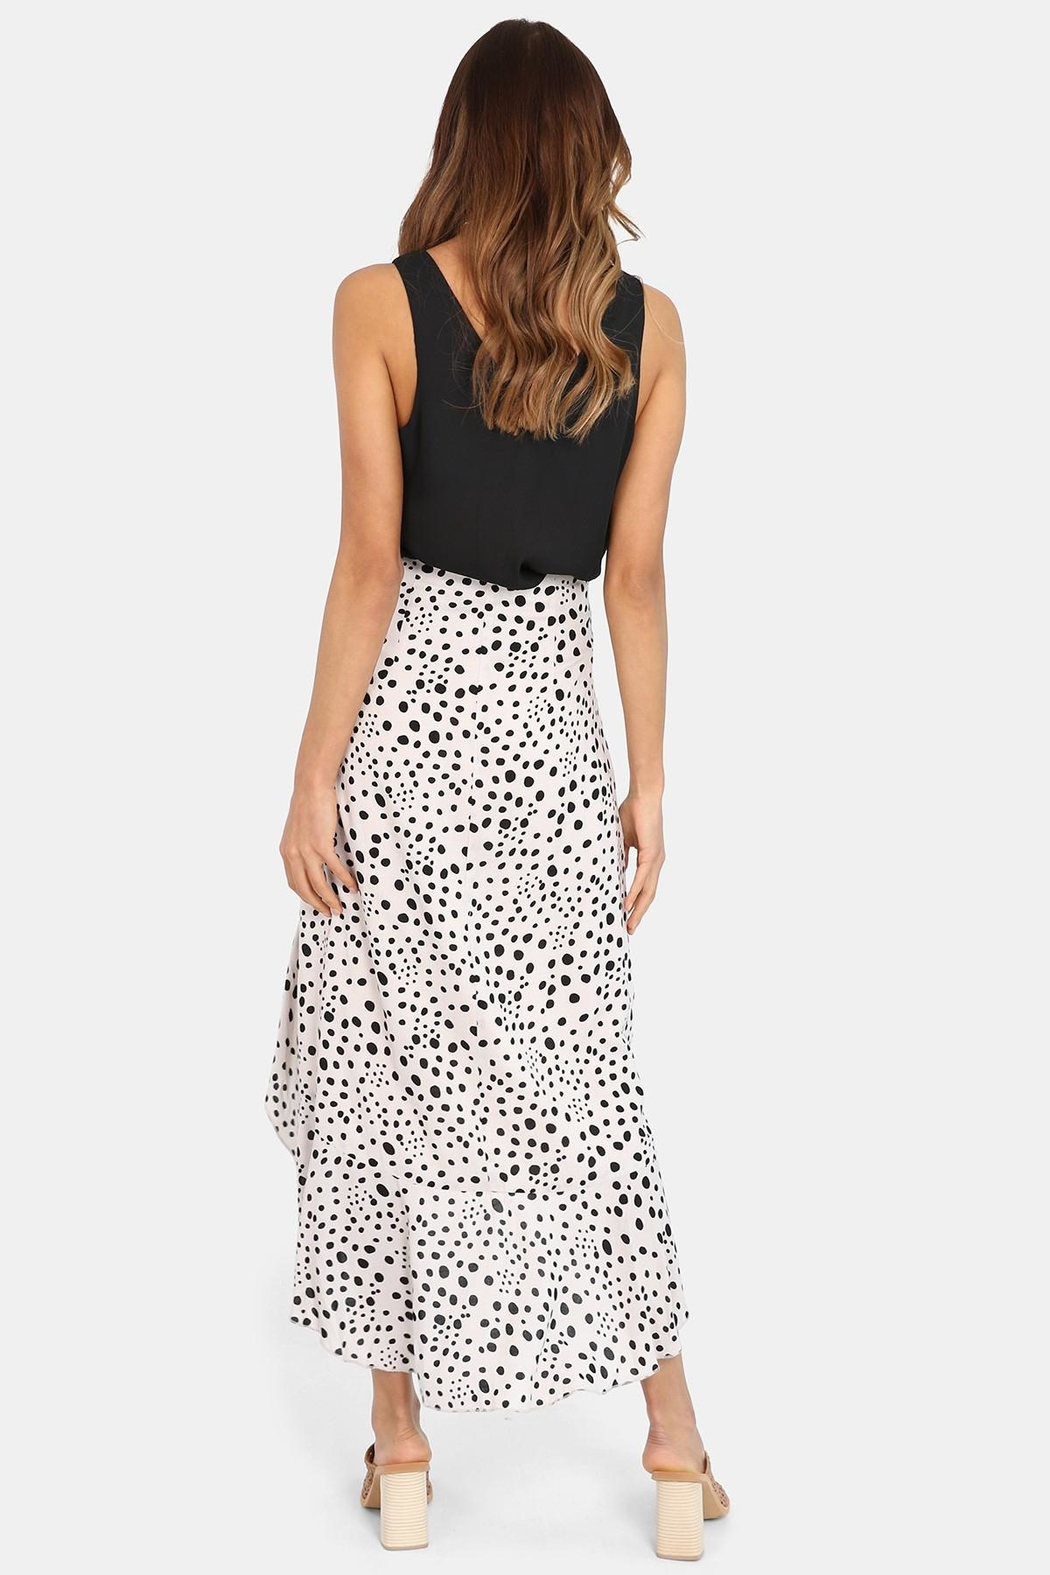 Lost in Lunar Allira Maxi Skirt - Side Cropped Image